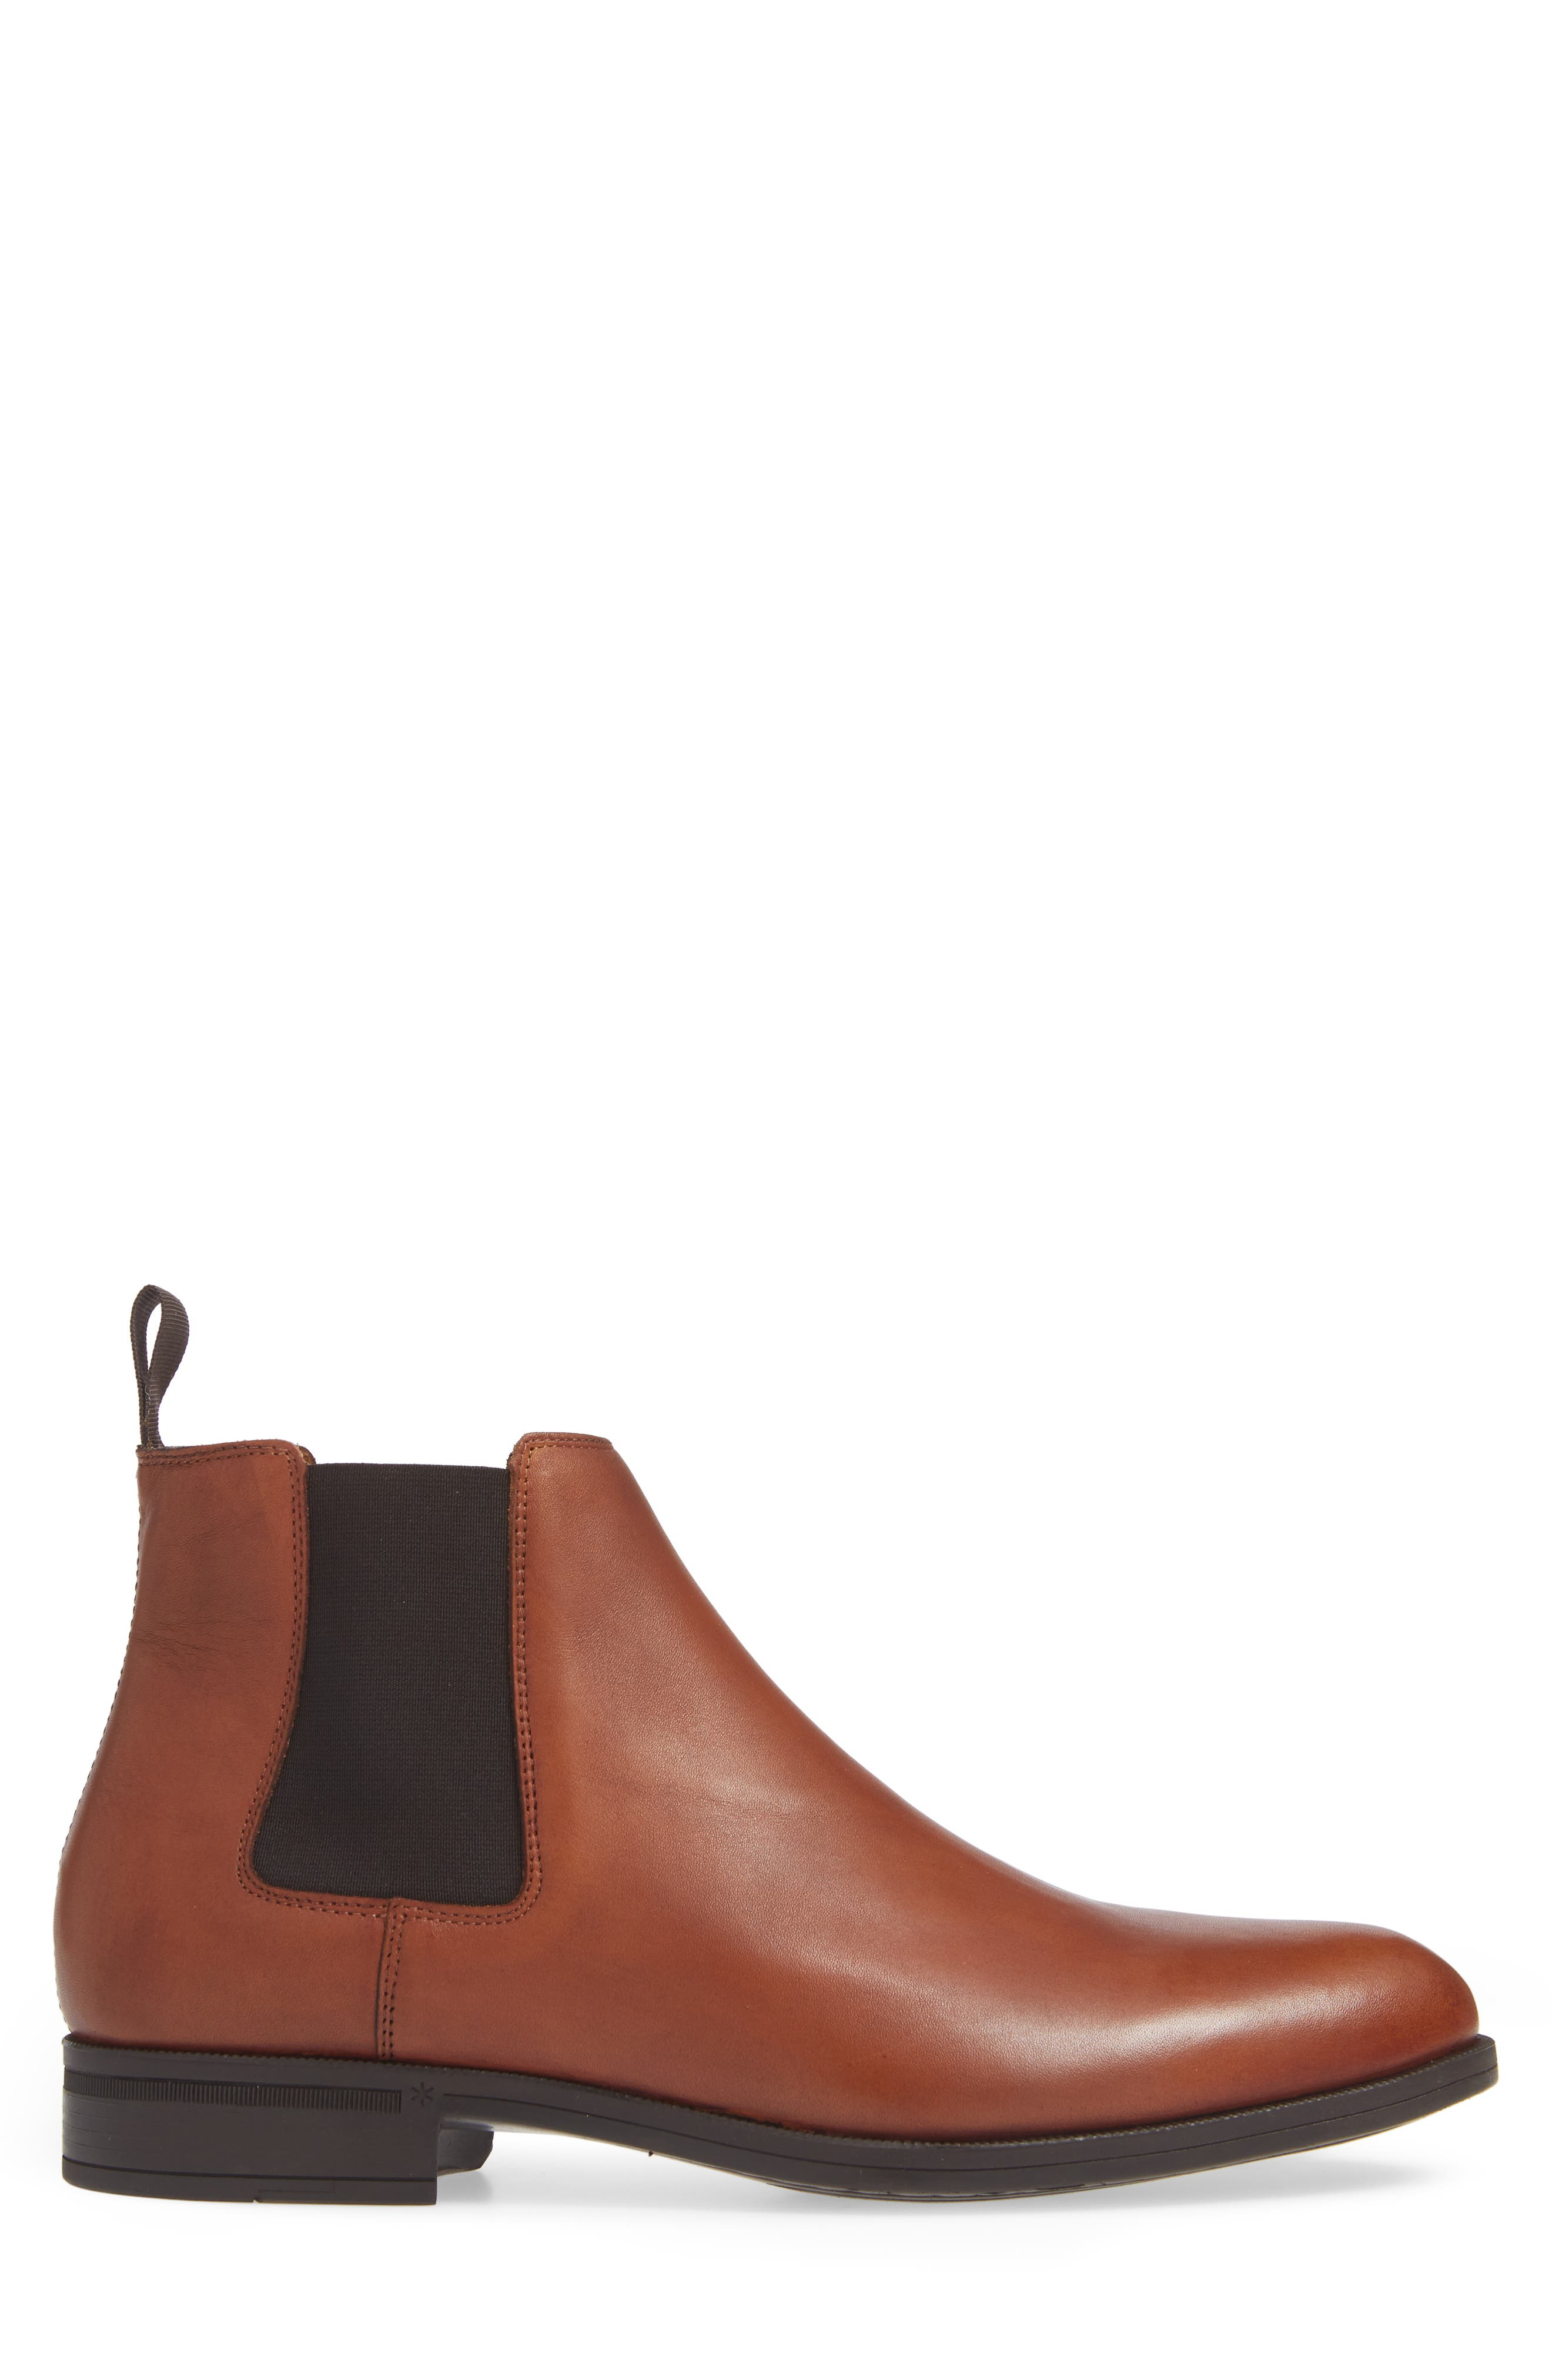 Ivo Mid Chelsea Boot,                             Alternate thumbnail 3, color,                             COGNAC LEATHER